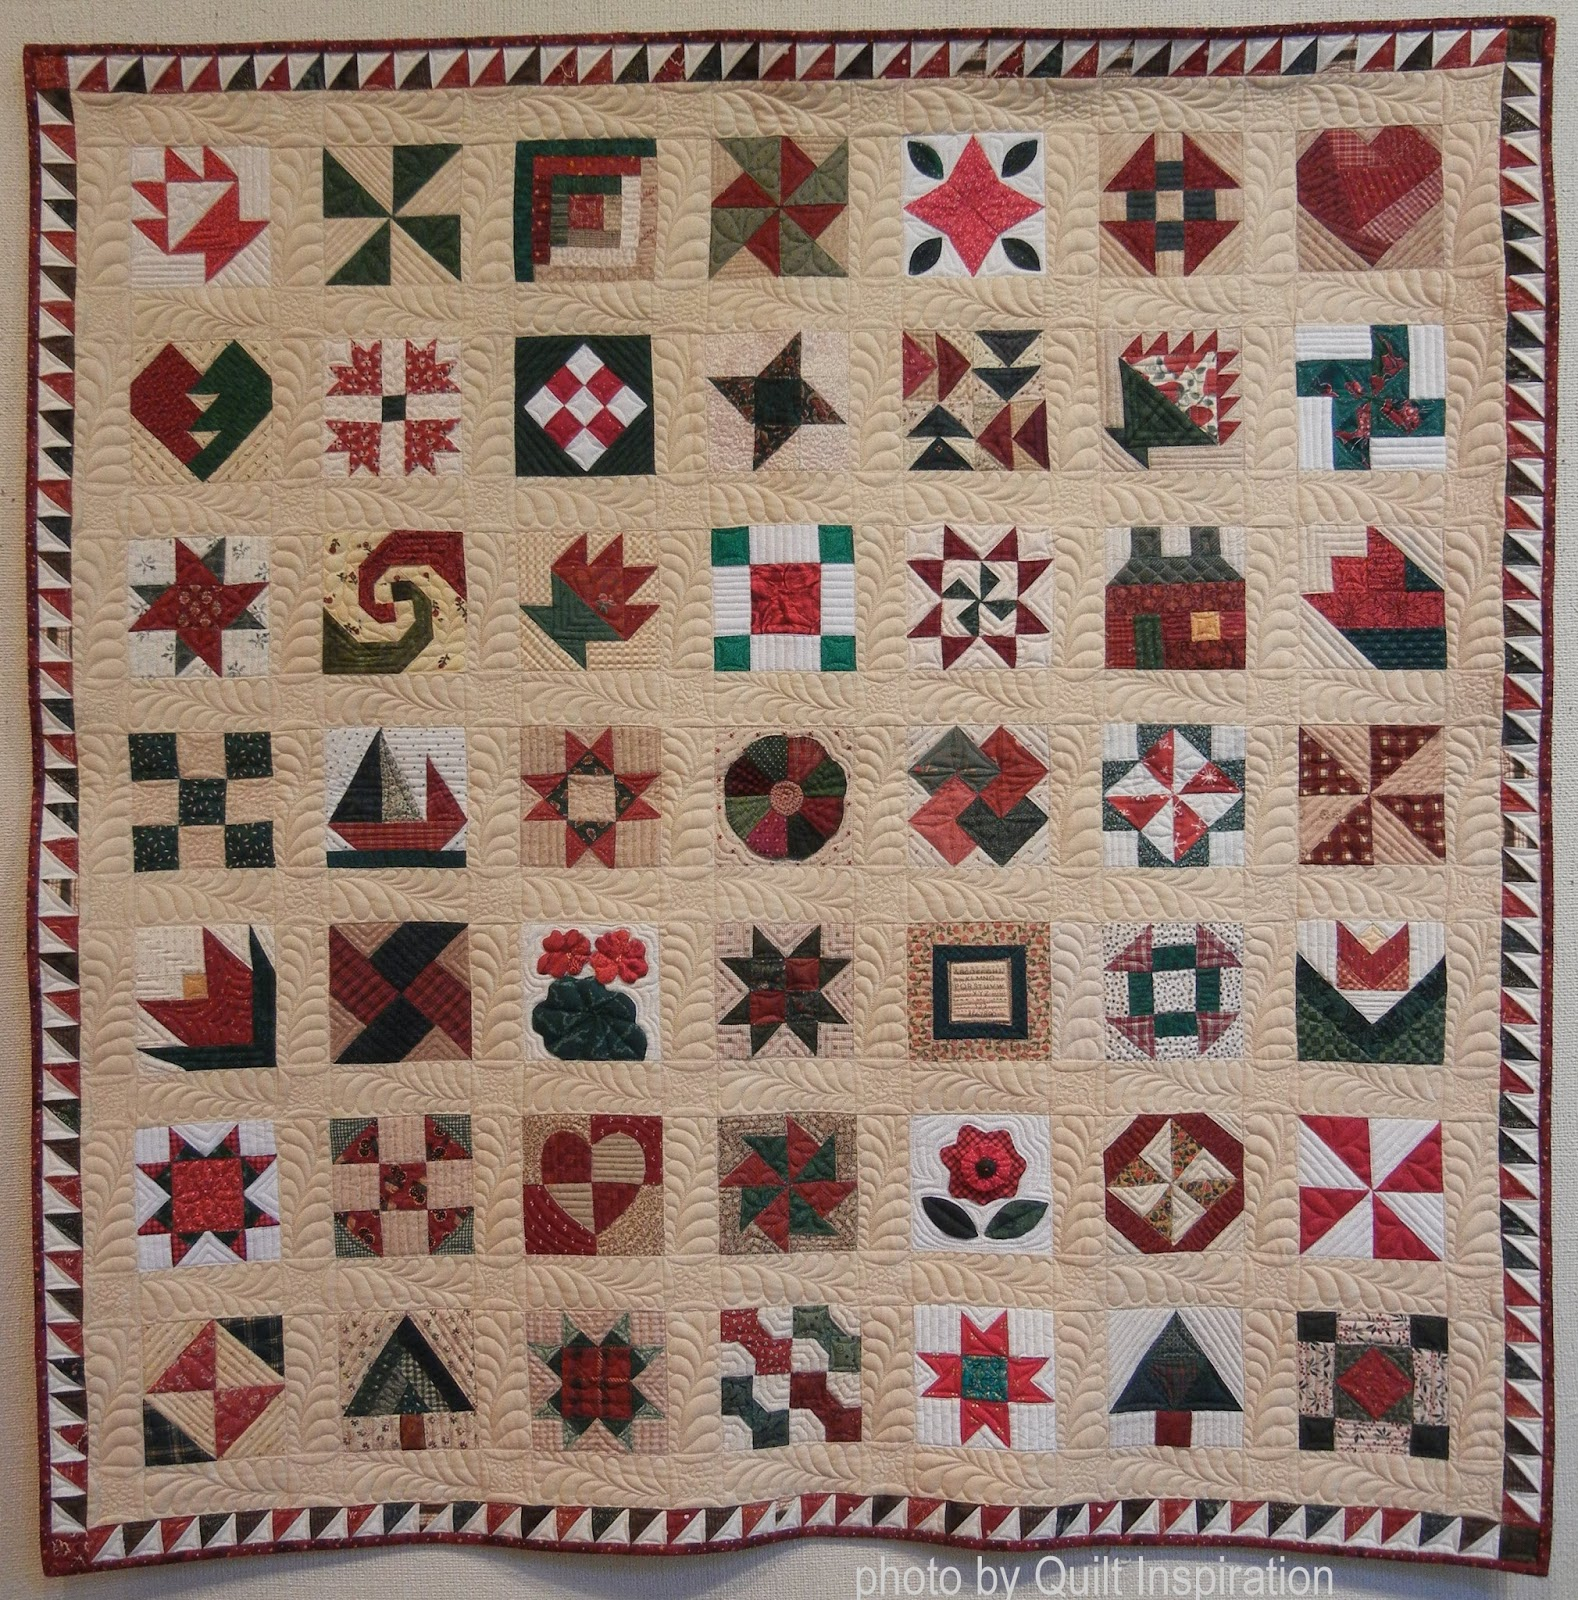 Quilt Inspiration: The 12 Days of Christmas: Day 5